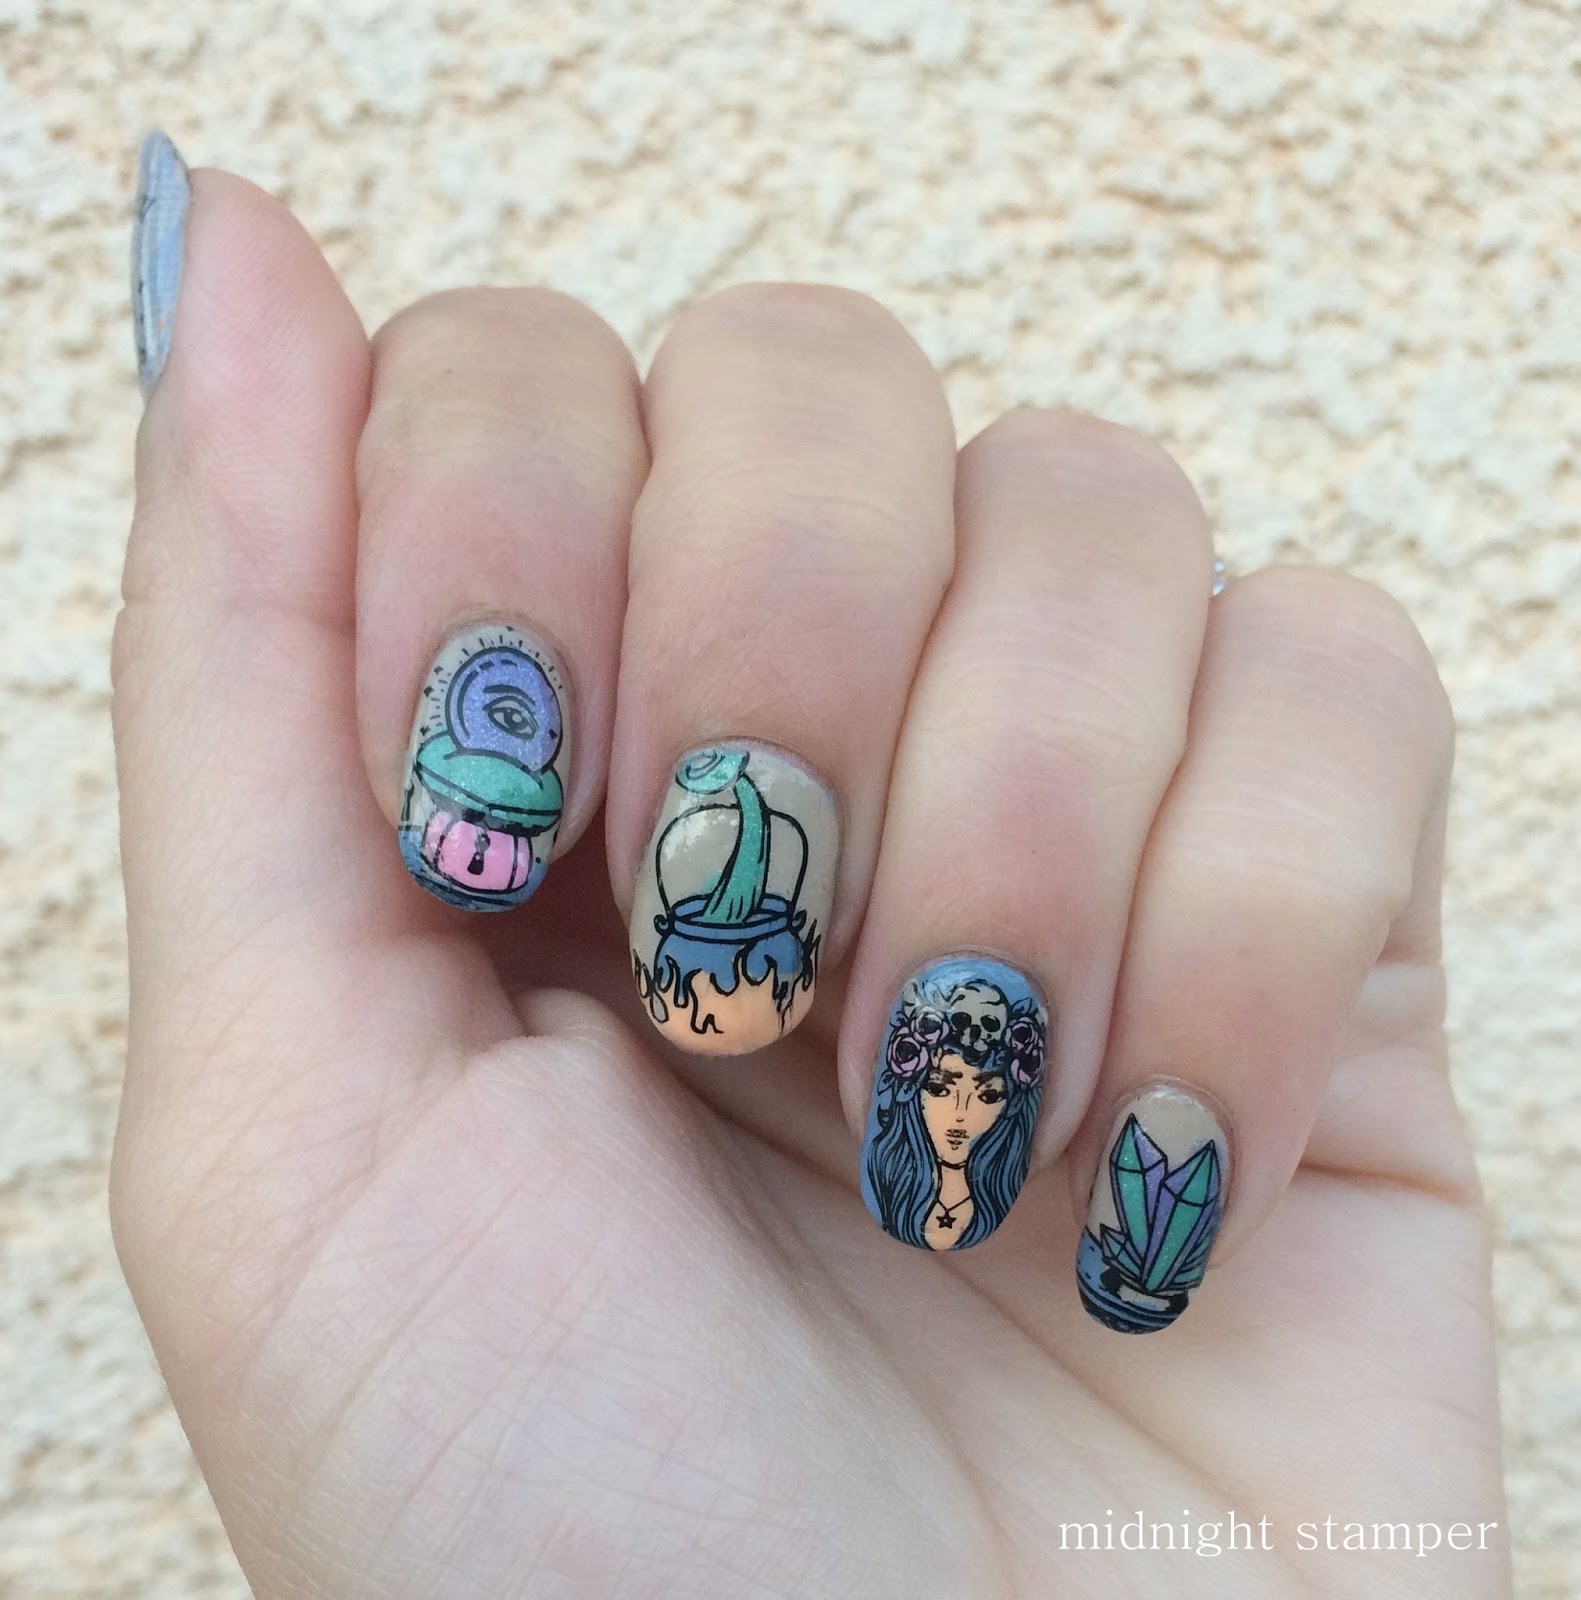 Midnight Stamper: Challenge Your Nail Art: Witches